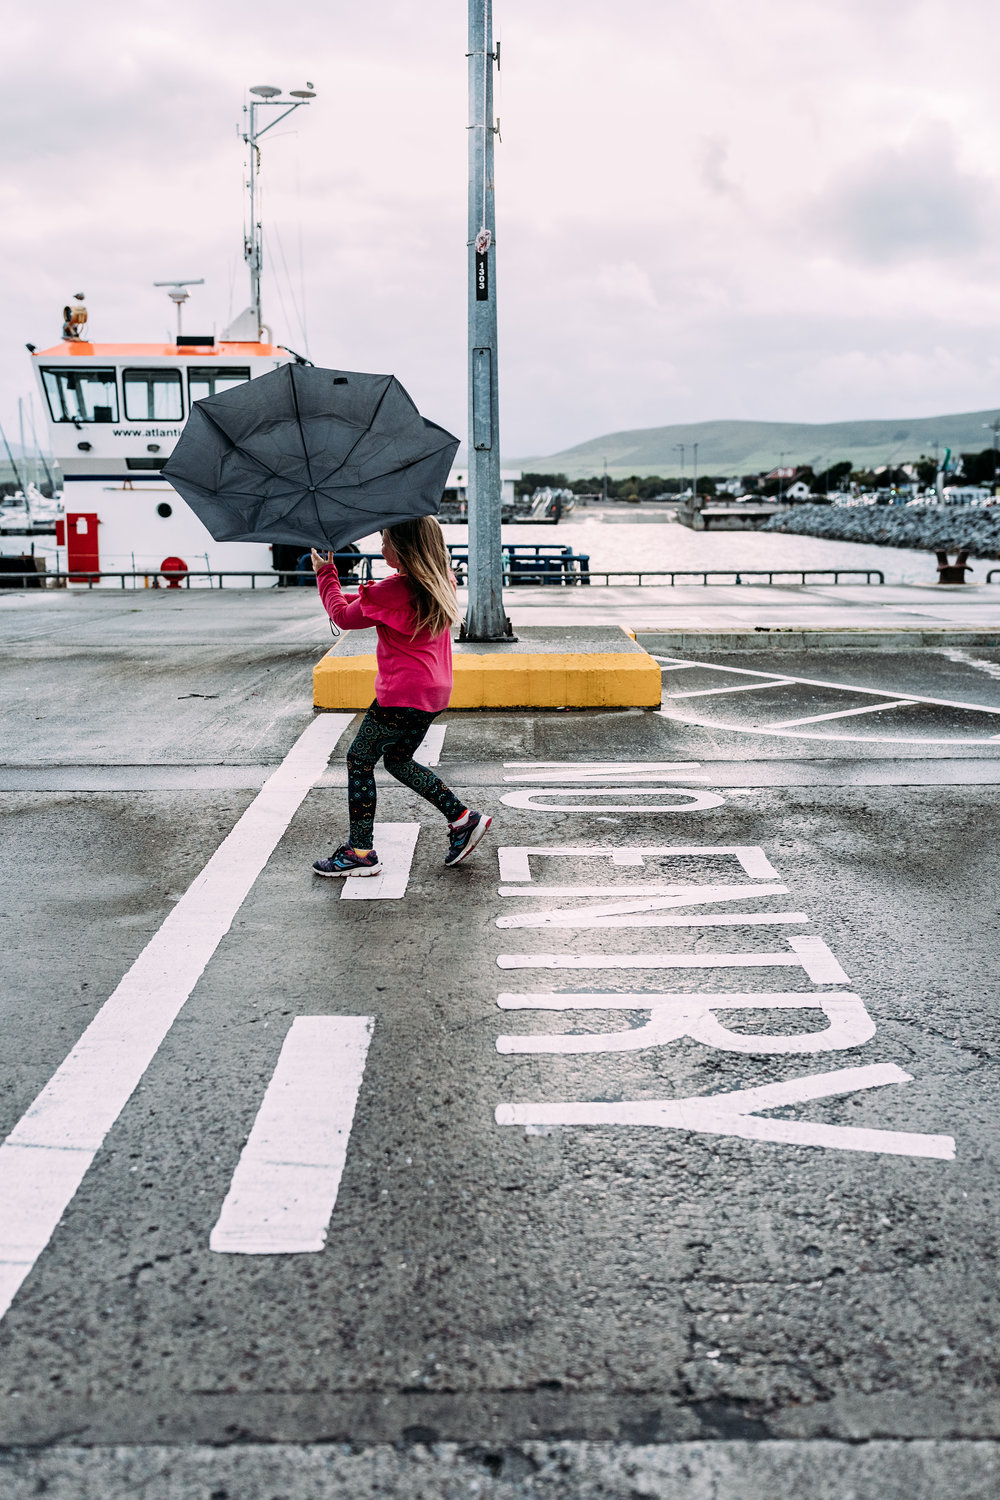 A strong wind blows a girl's umbrella inside out on a dockside in Dingle, Ireland